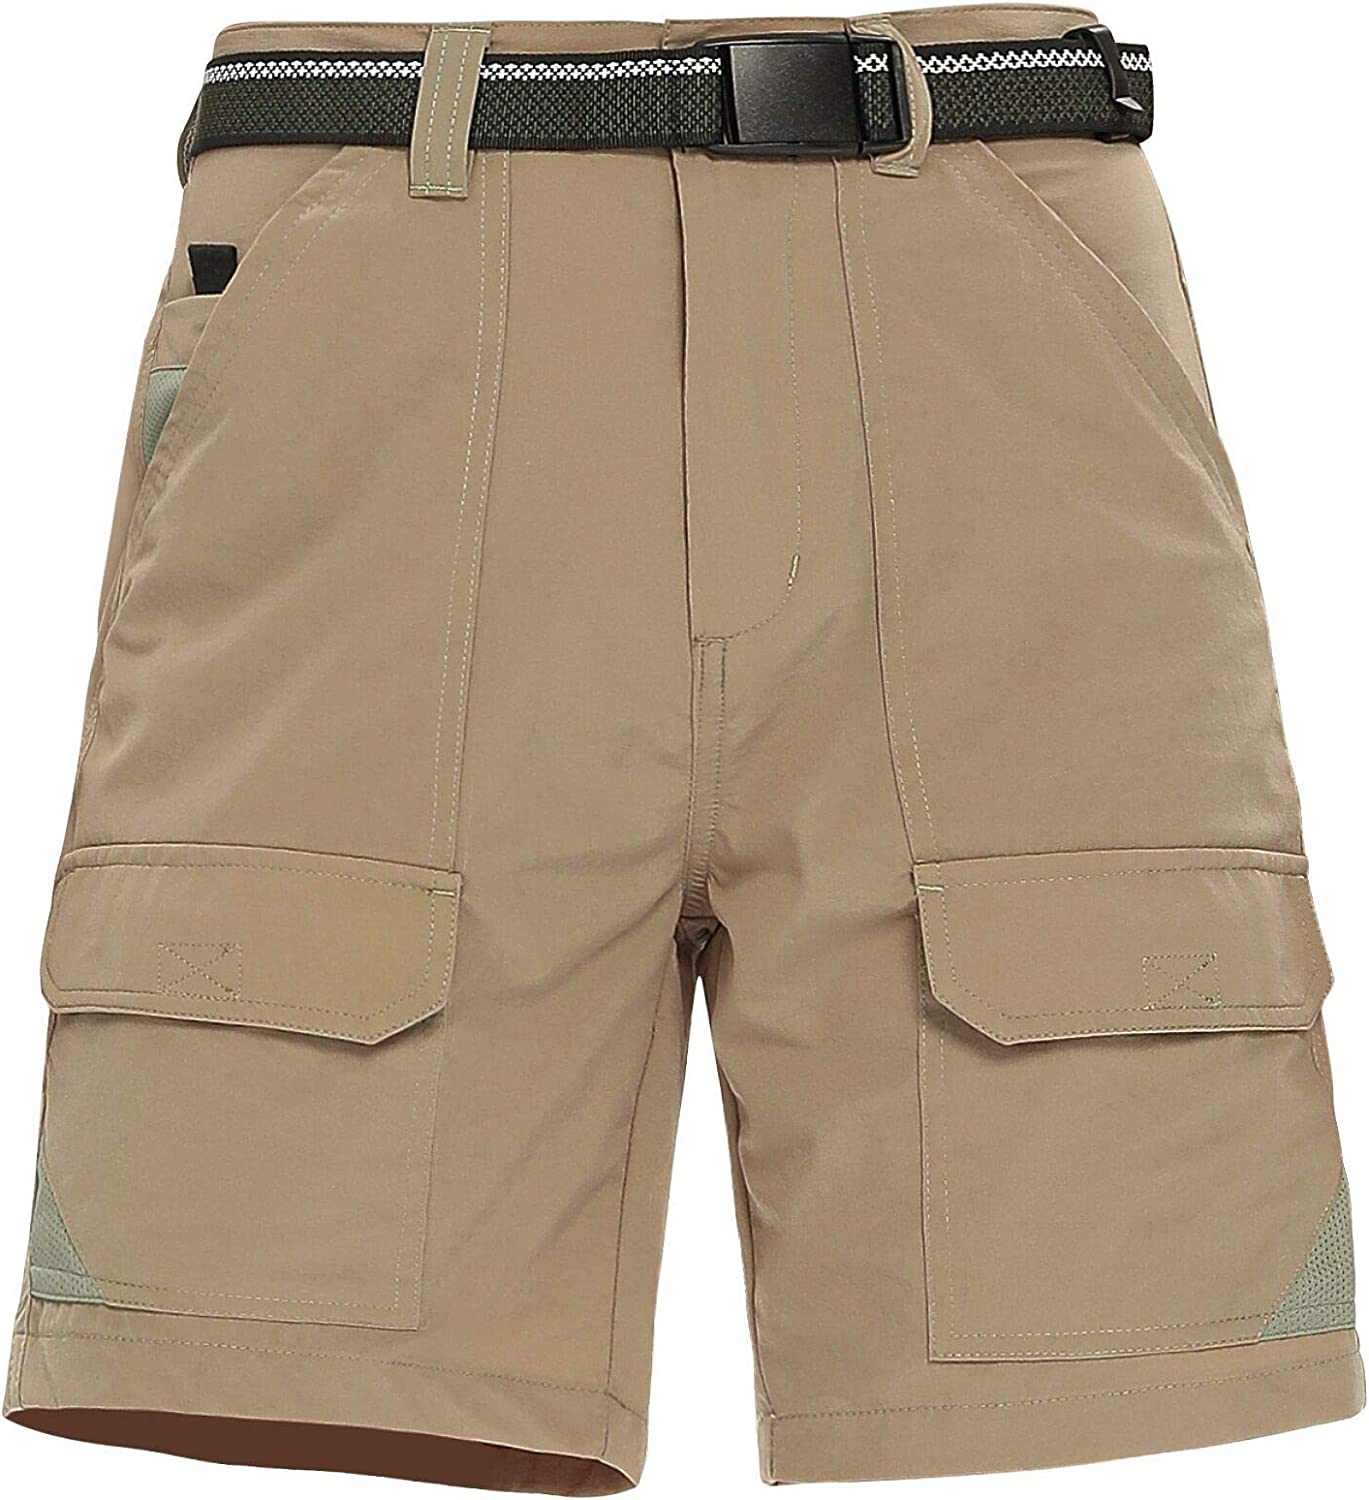 Asfixiado Women's Quick Dry Cargo 7 with Pockets Stretch Shorts Chicago Purchase Mall